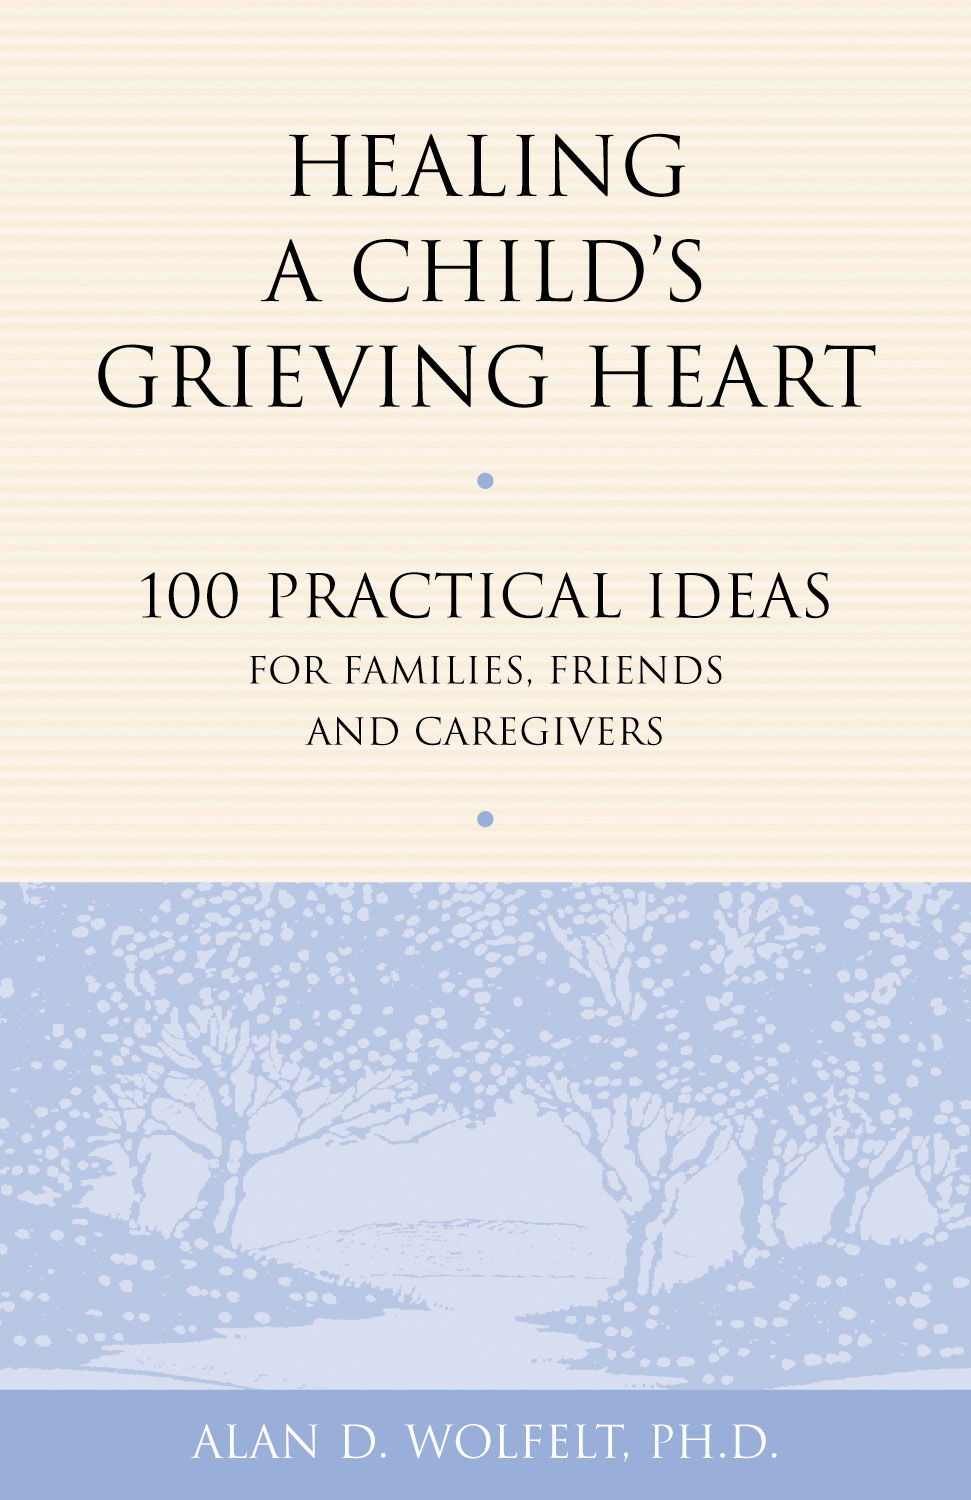 Healing a Child's Grieving Heart By: Alan D. Wolfelt, PhD